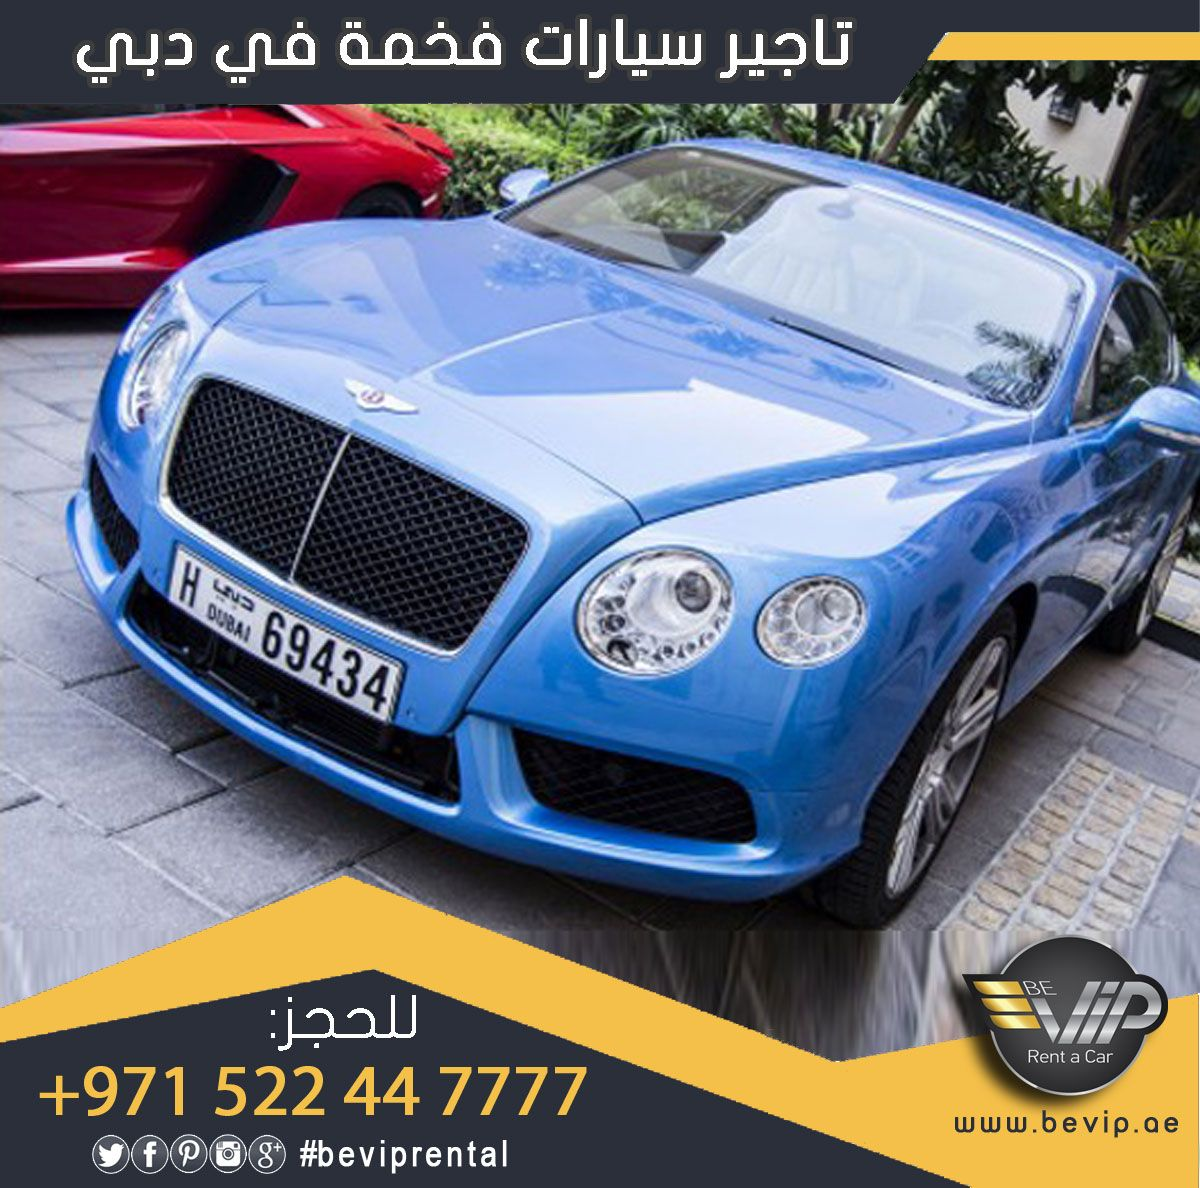 The Bentley Continental Gt For Rent From Be Vip Luxury Car Rental In Dubai Is A True Sporting Pedigree But Luxury Car Rental Car Rental Bentley Continental Gt